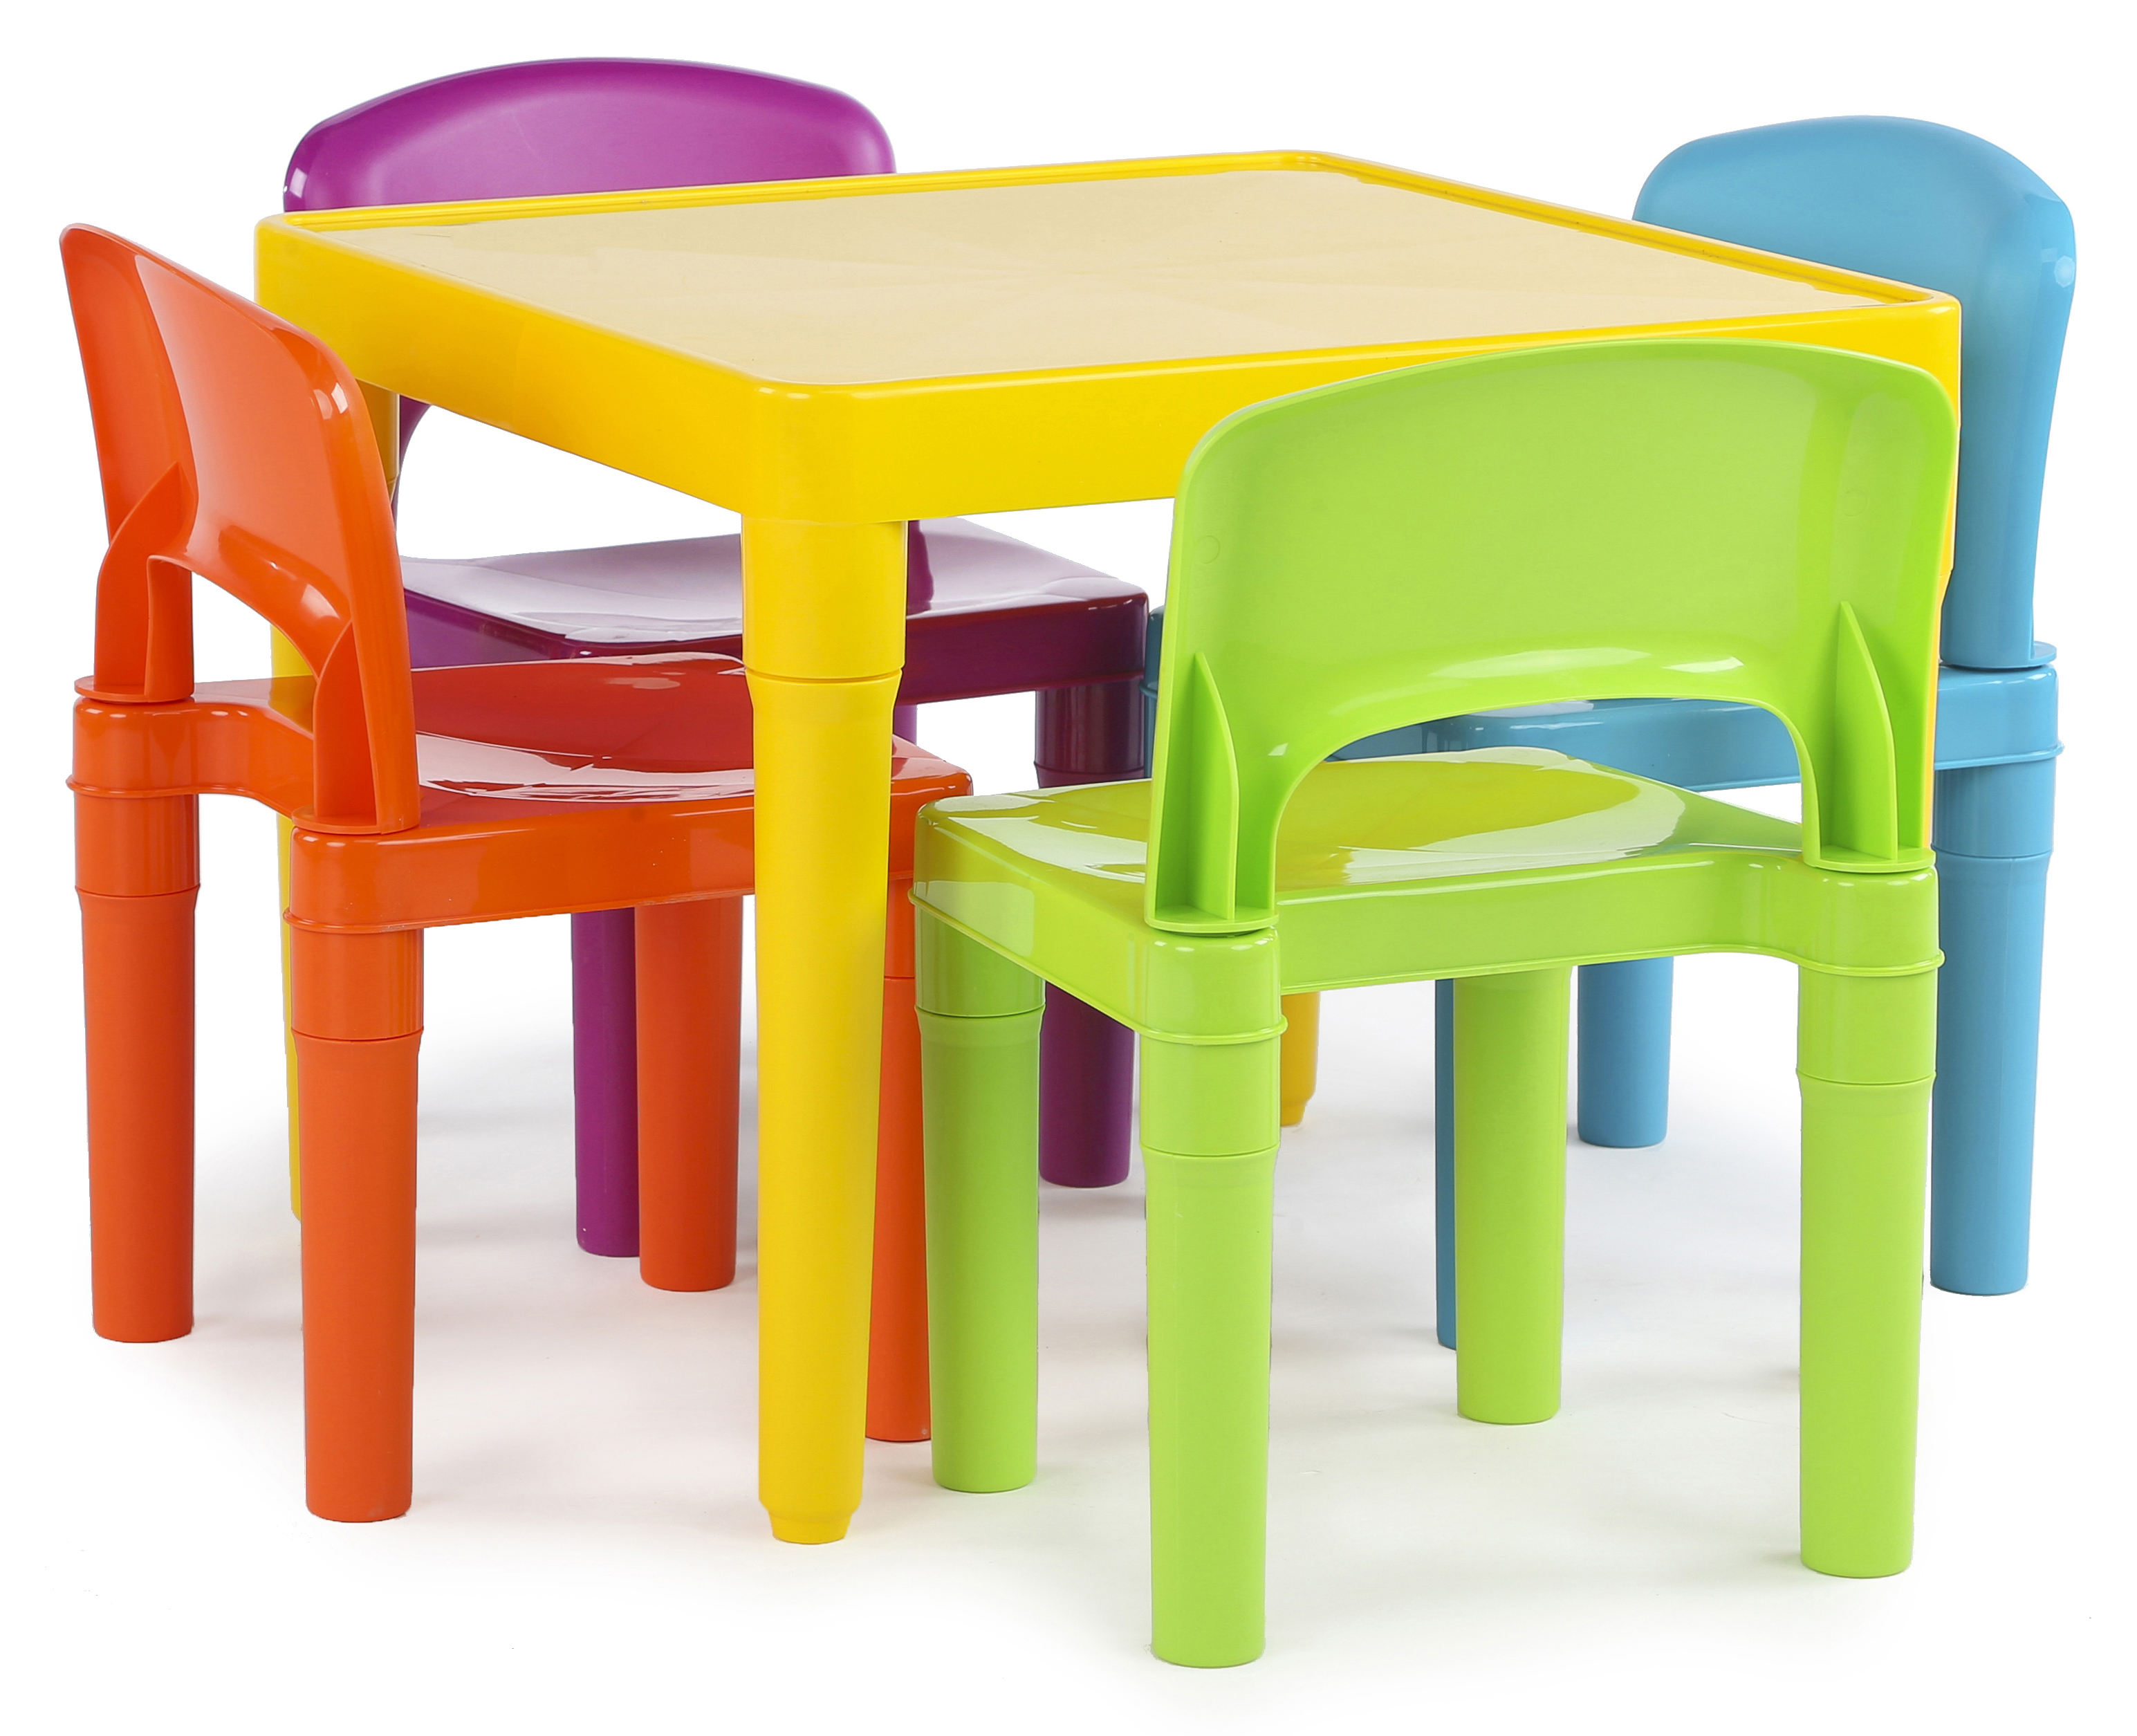 Plastic Table And Chairs For Kids Tot Tutors Kids Plastic Table And 4 Chairs Set Vibrant Colors